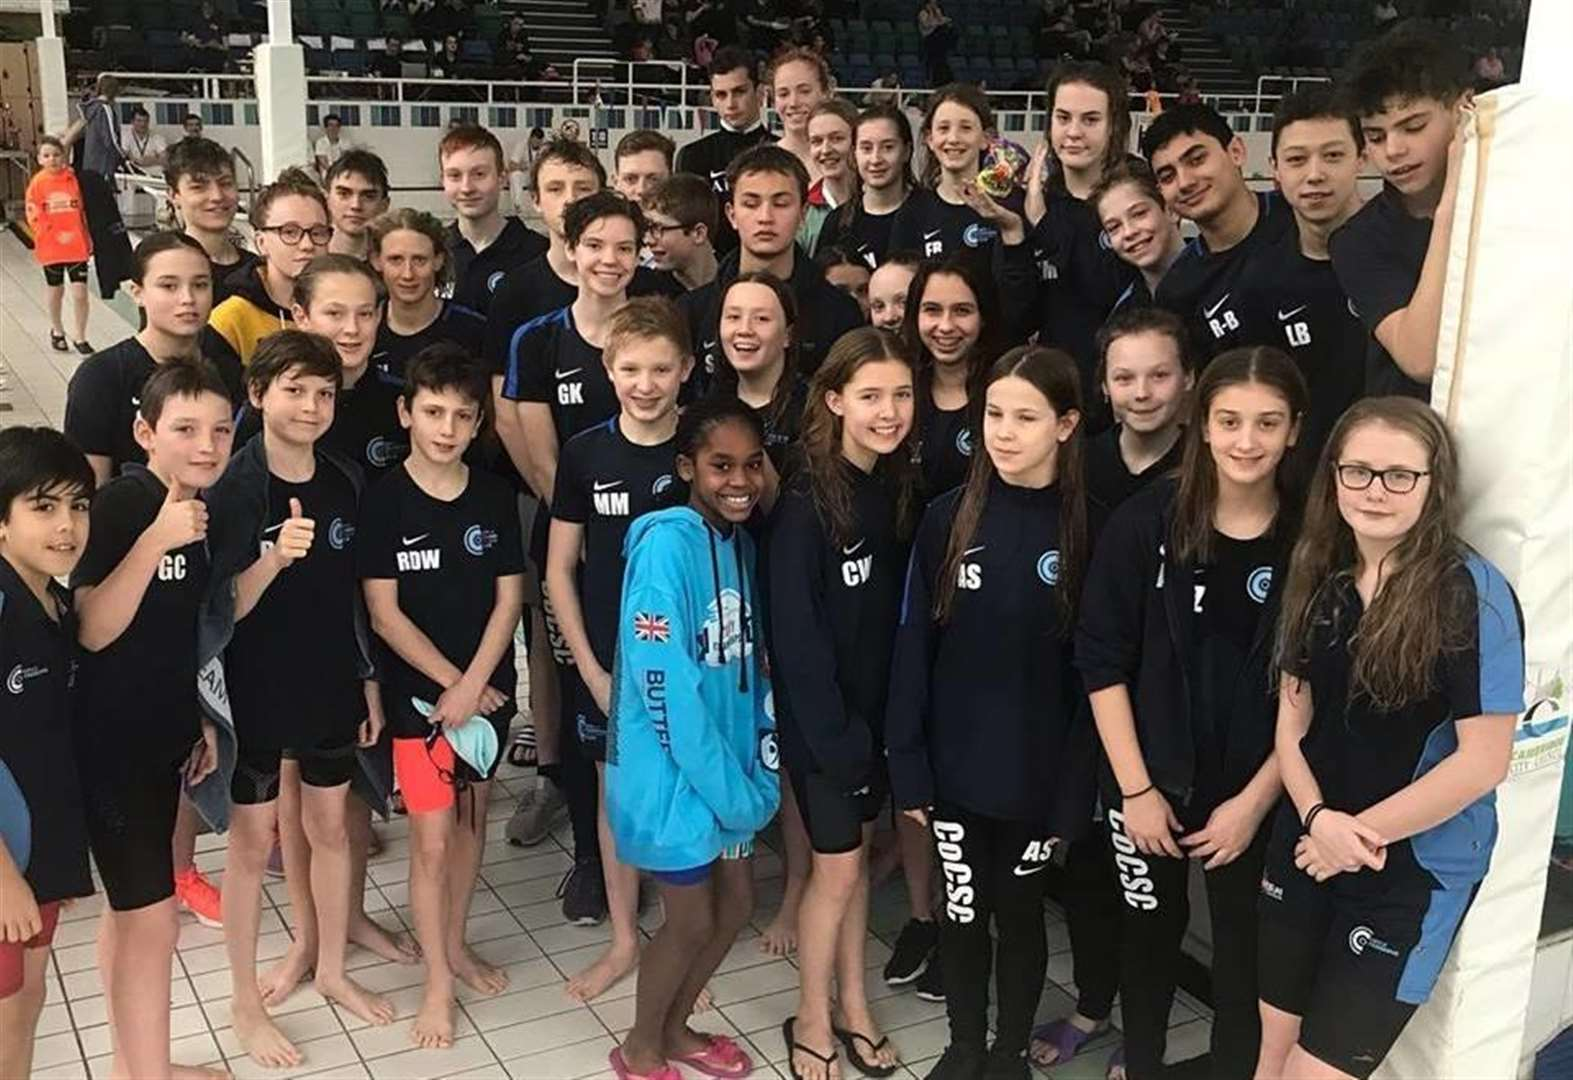 City of Cambridge Swimming Club celebrate golden delight at County Championships